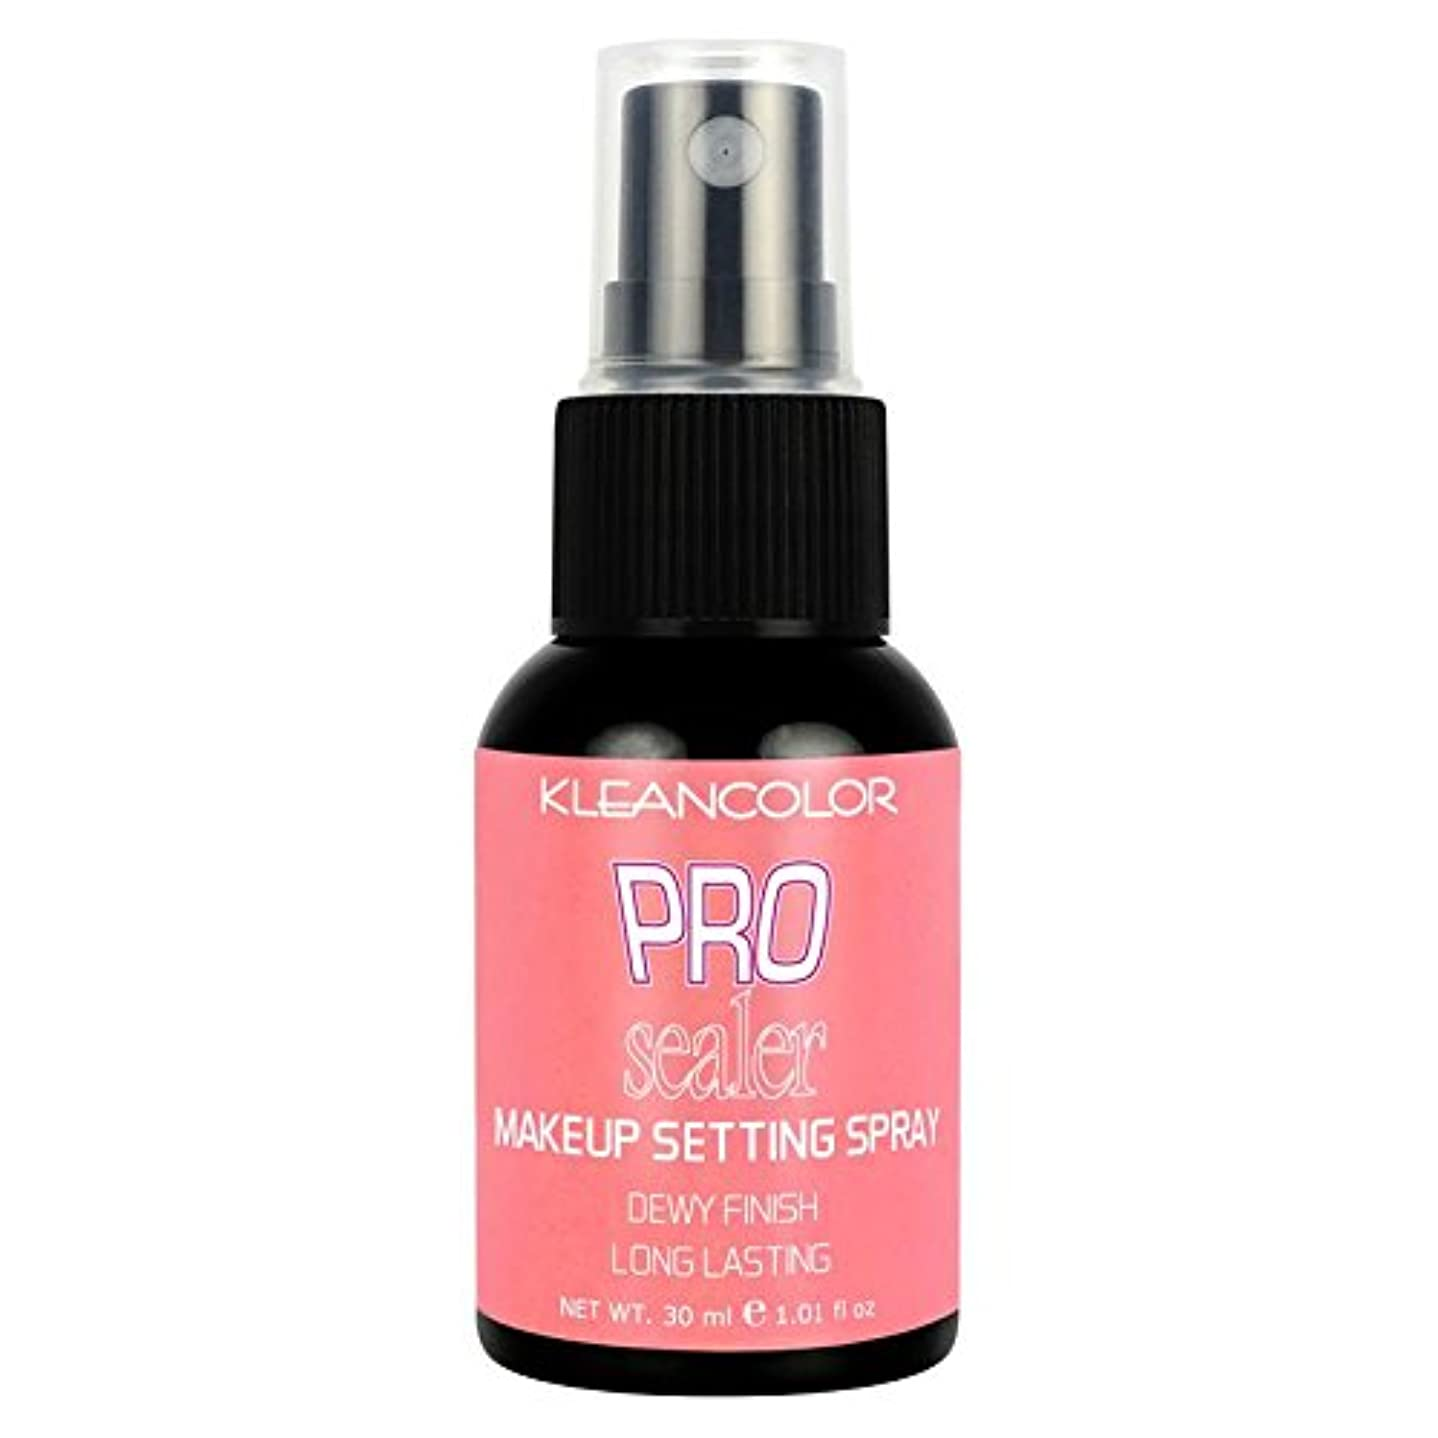 アレルギー性馬鹿げたクロール(6 Pack) KLEANCOLOR Pro Sealer Makeup Setting Spray - Dewy Finish (並行輸入品)